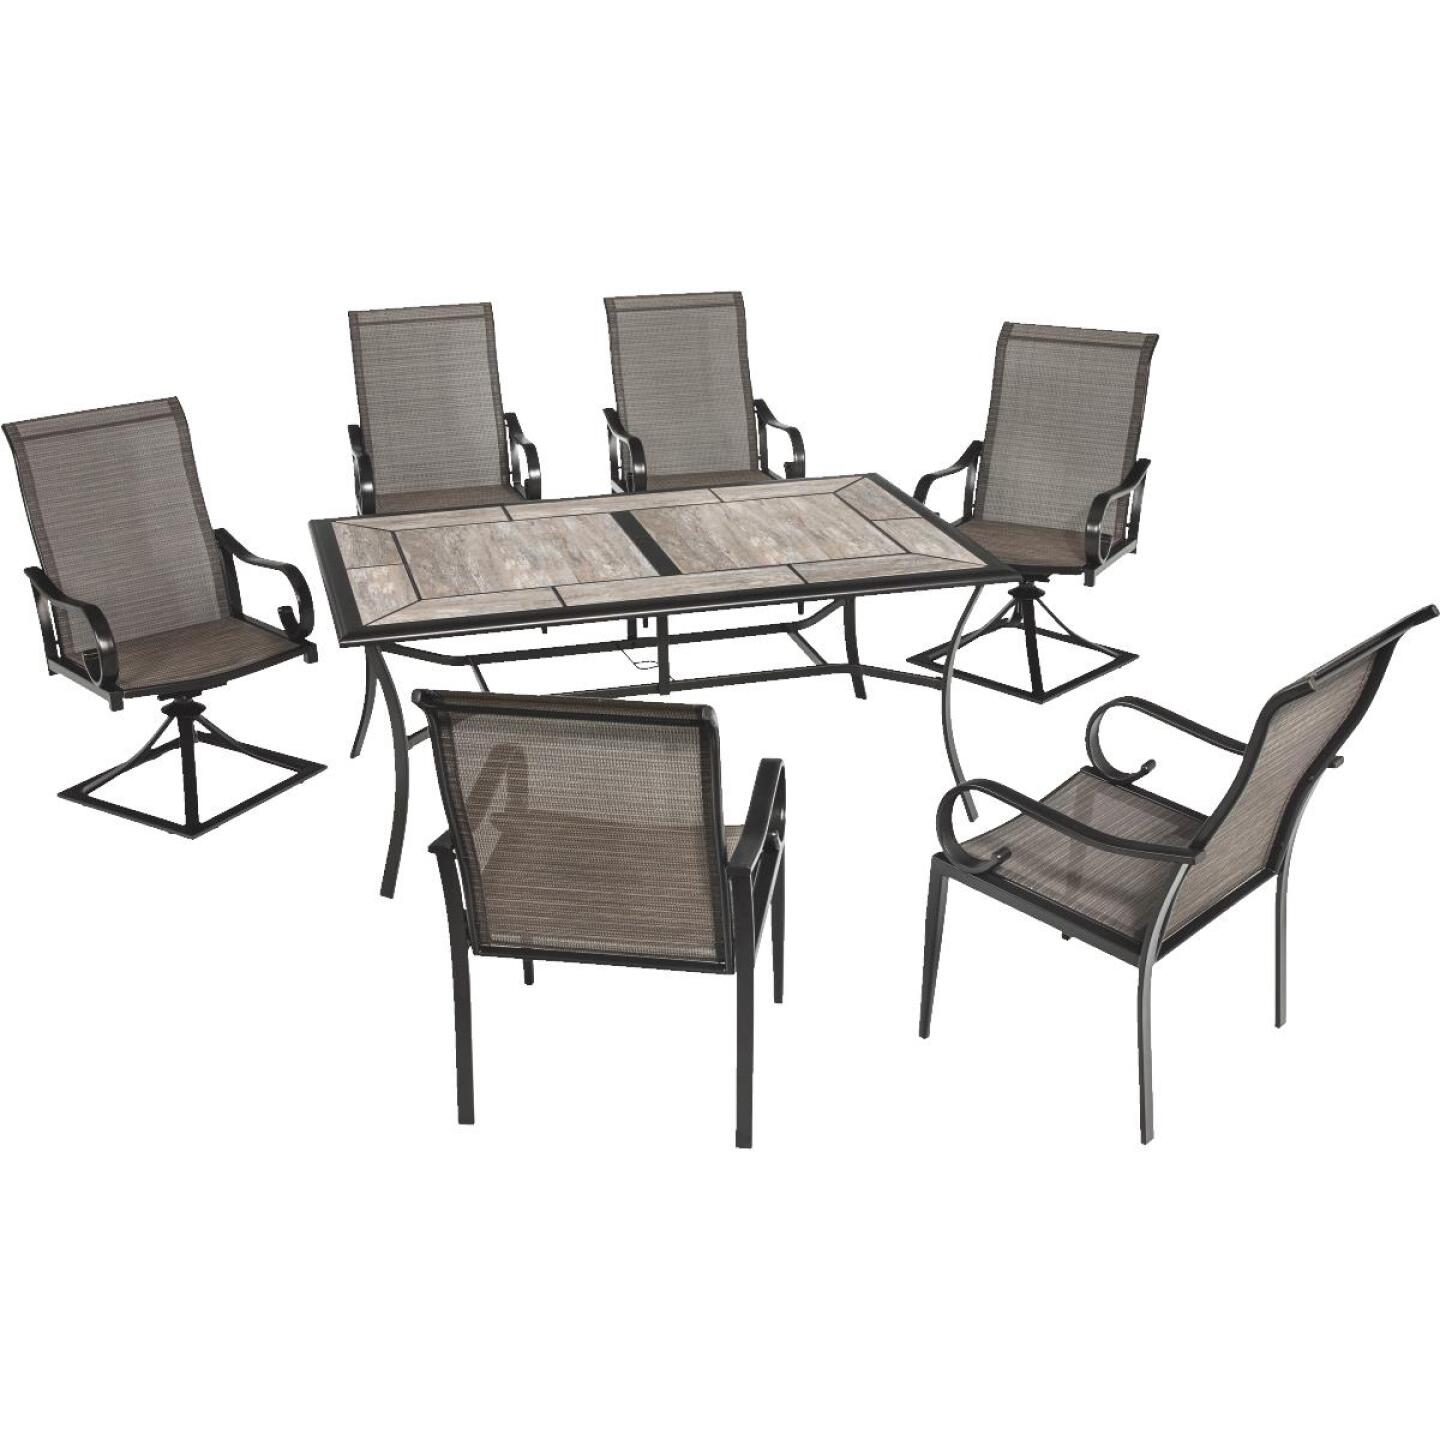 Outdoor Expressions Berkshire 7-Piece Dining Set Image 201